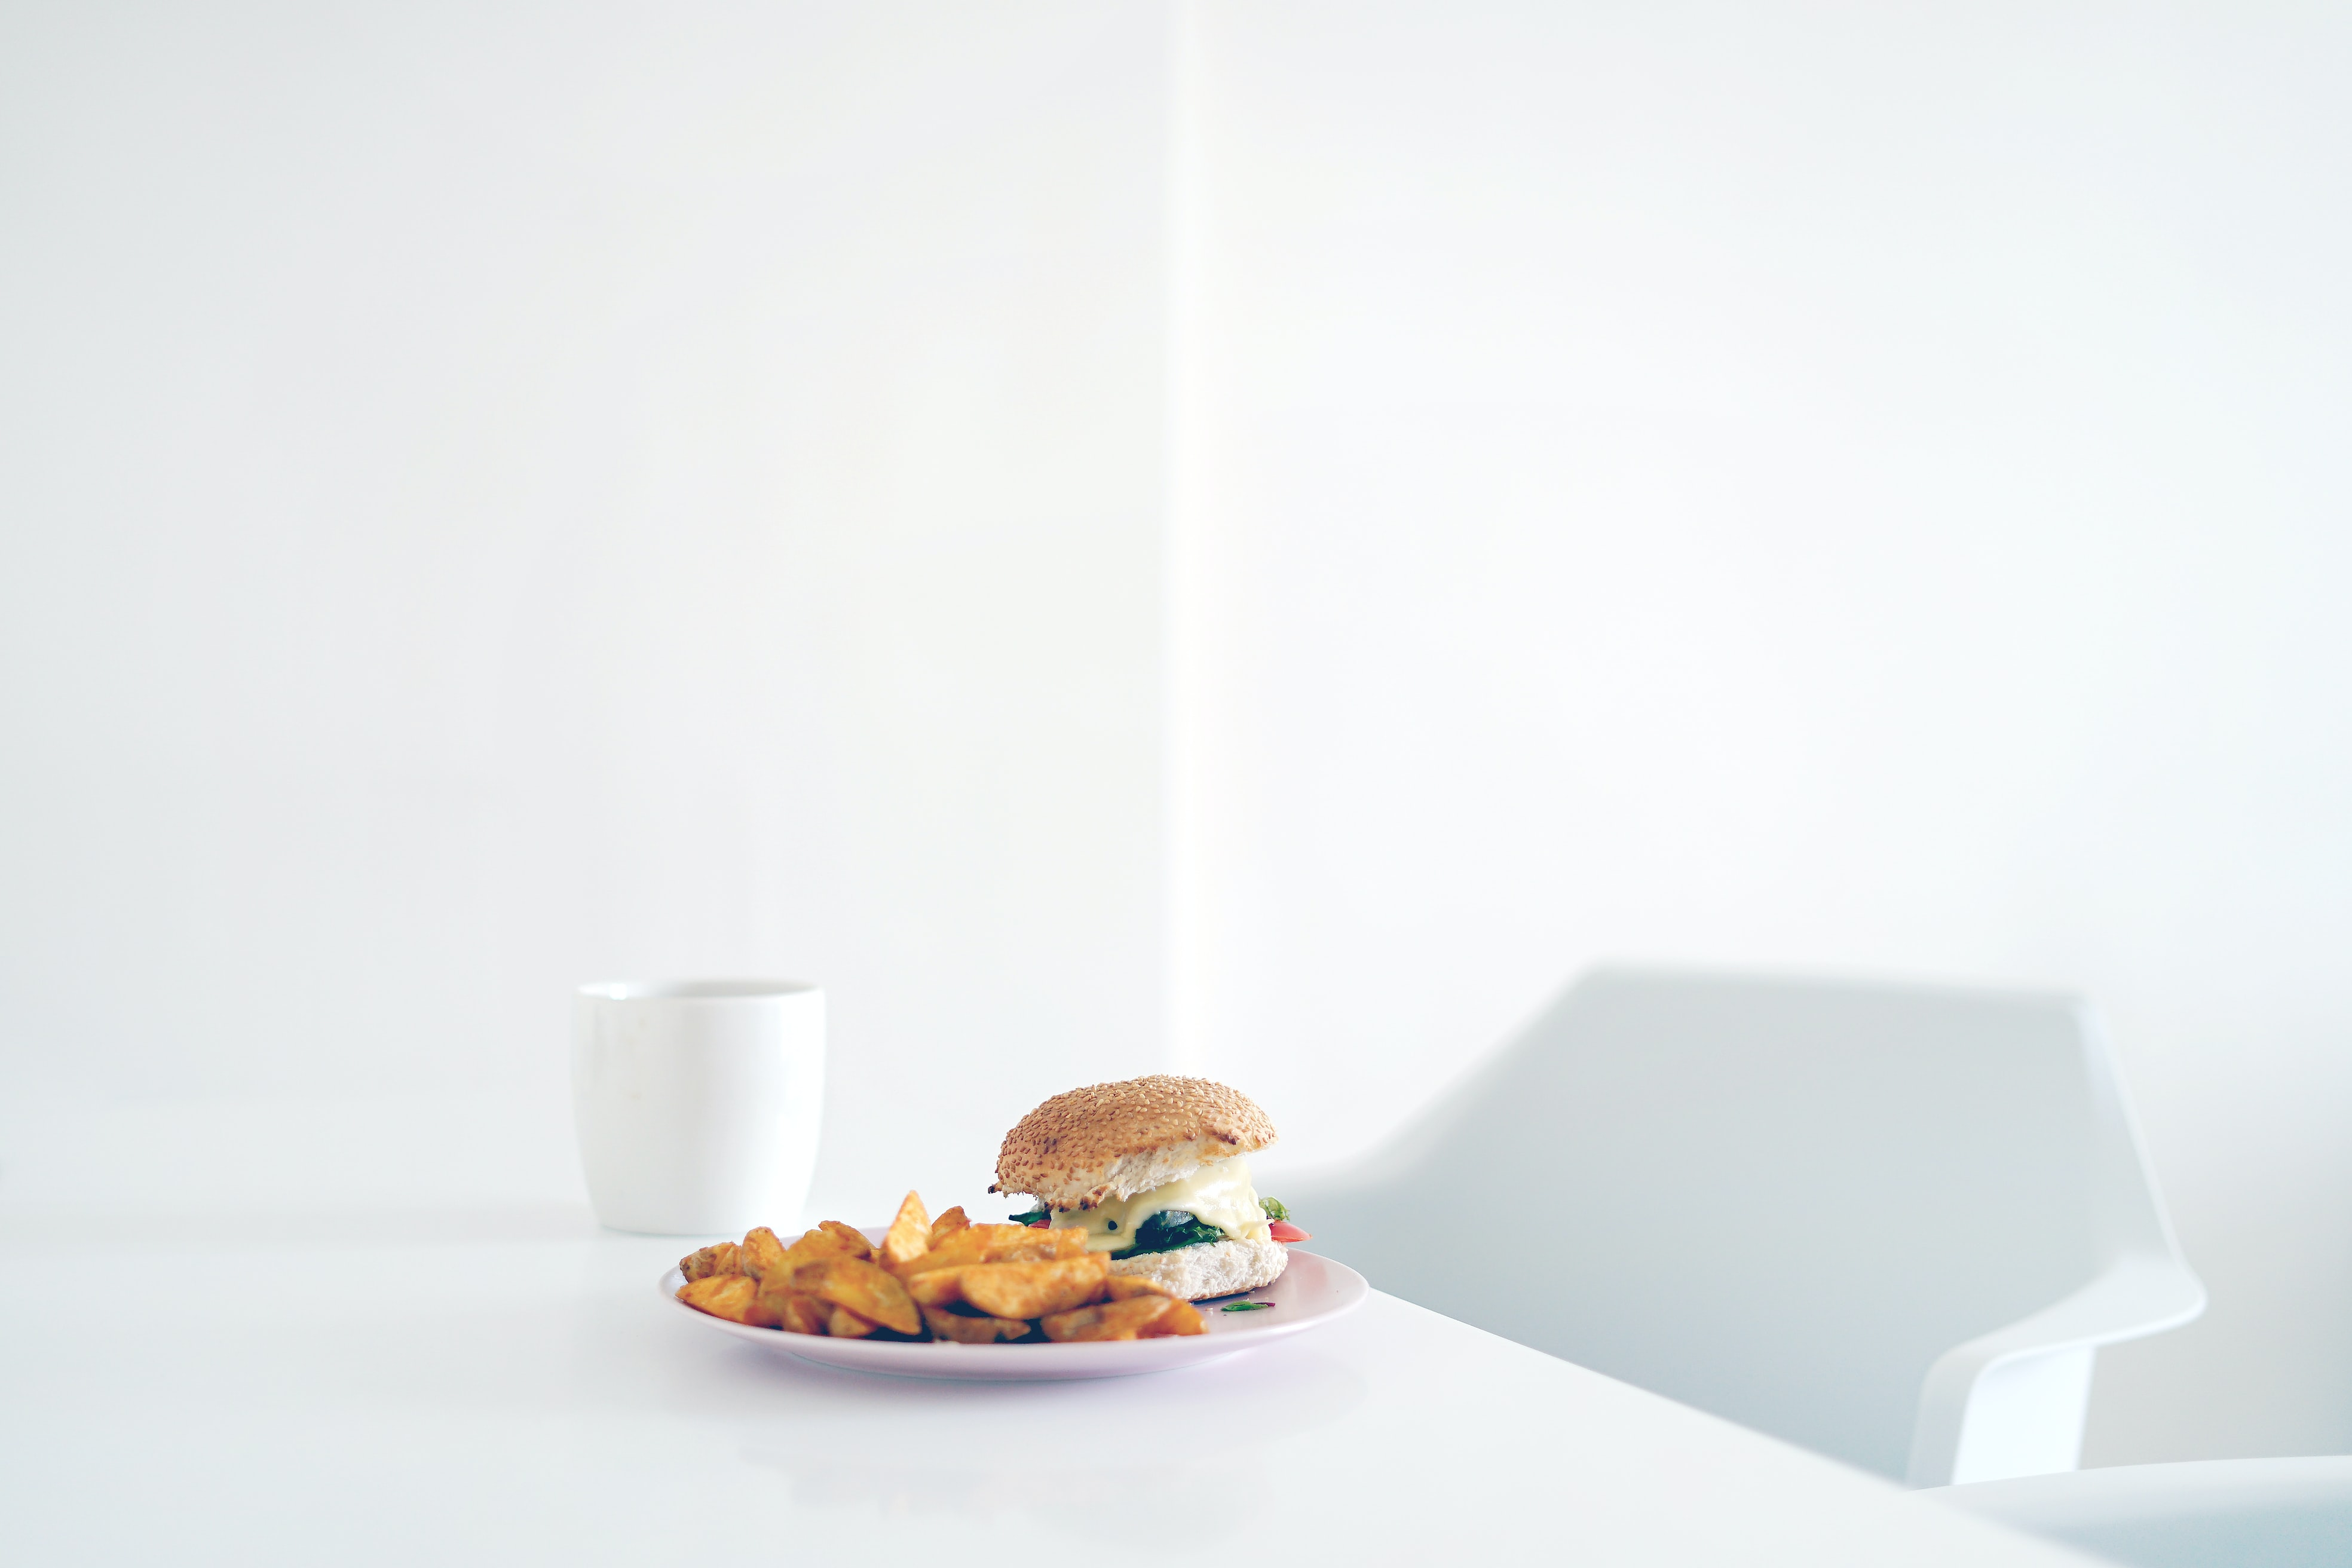 burger on plate beside mug